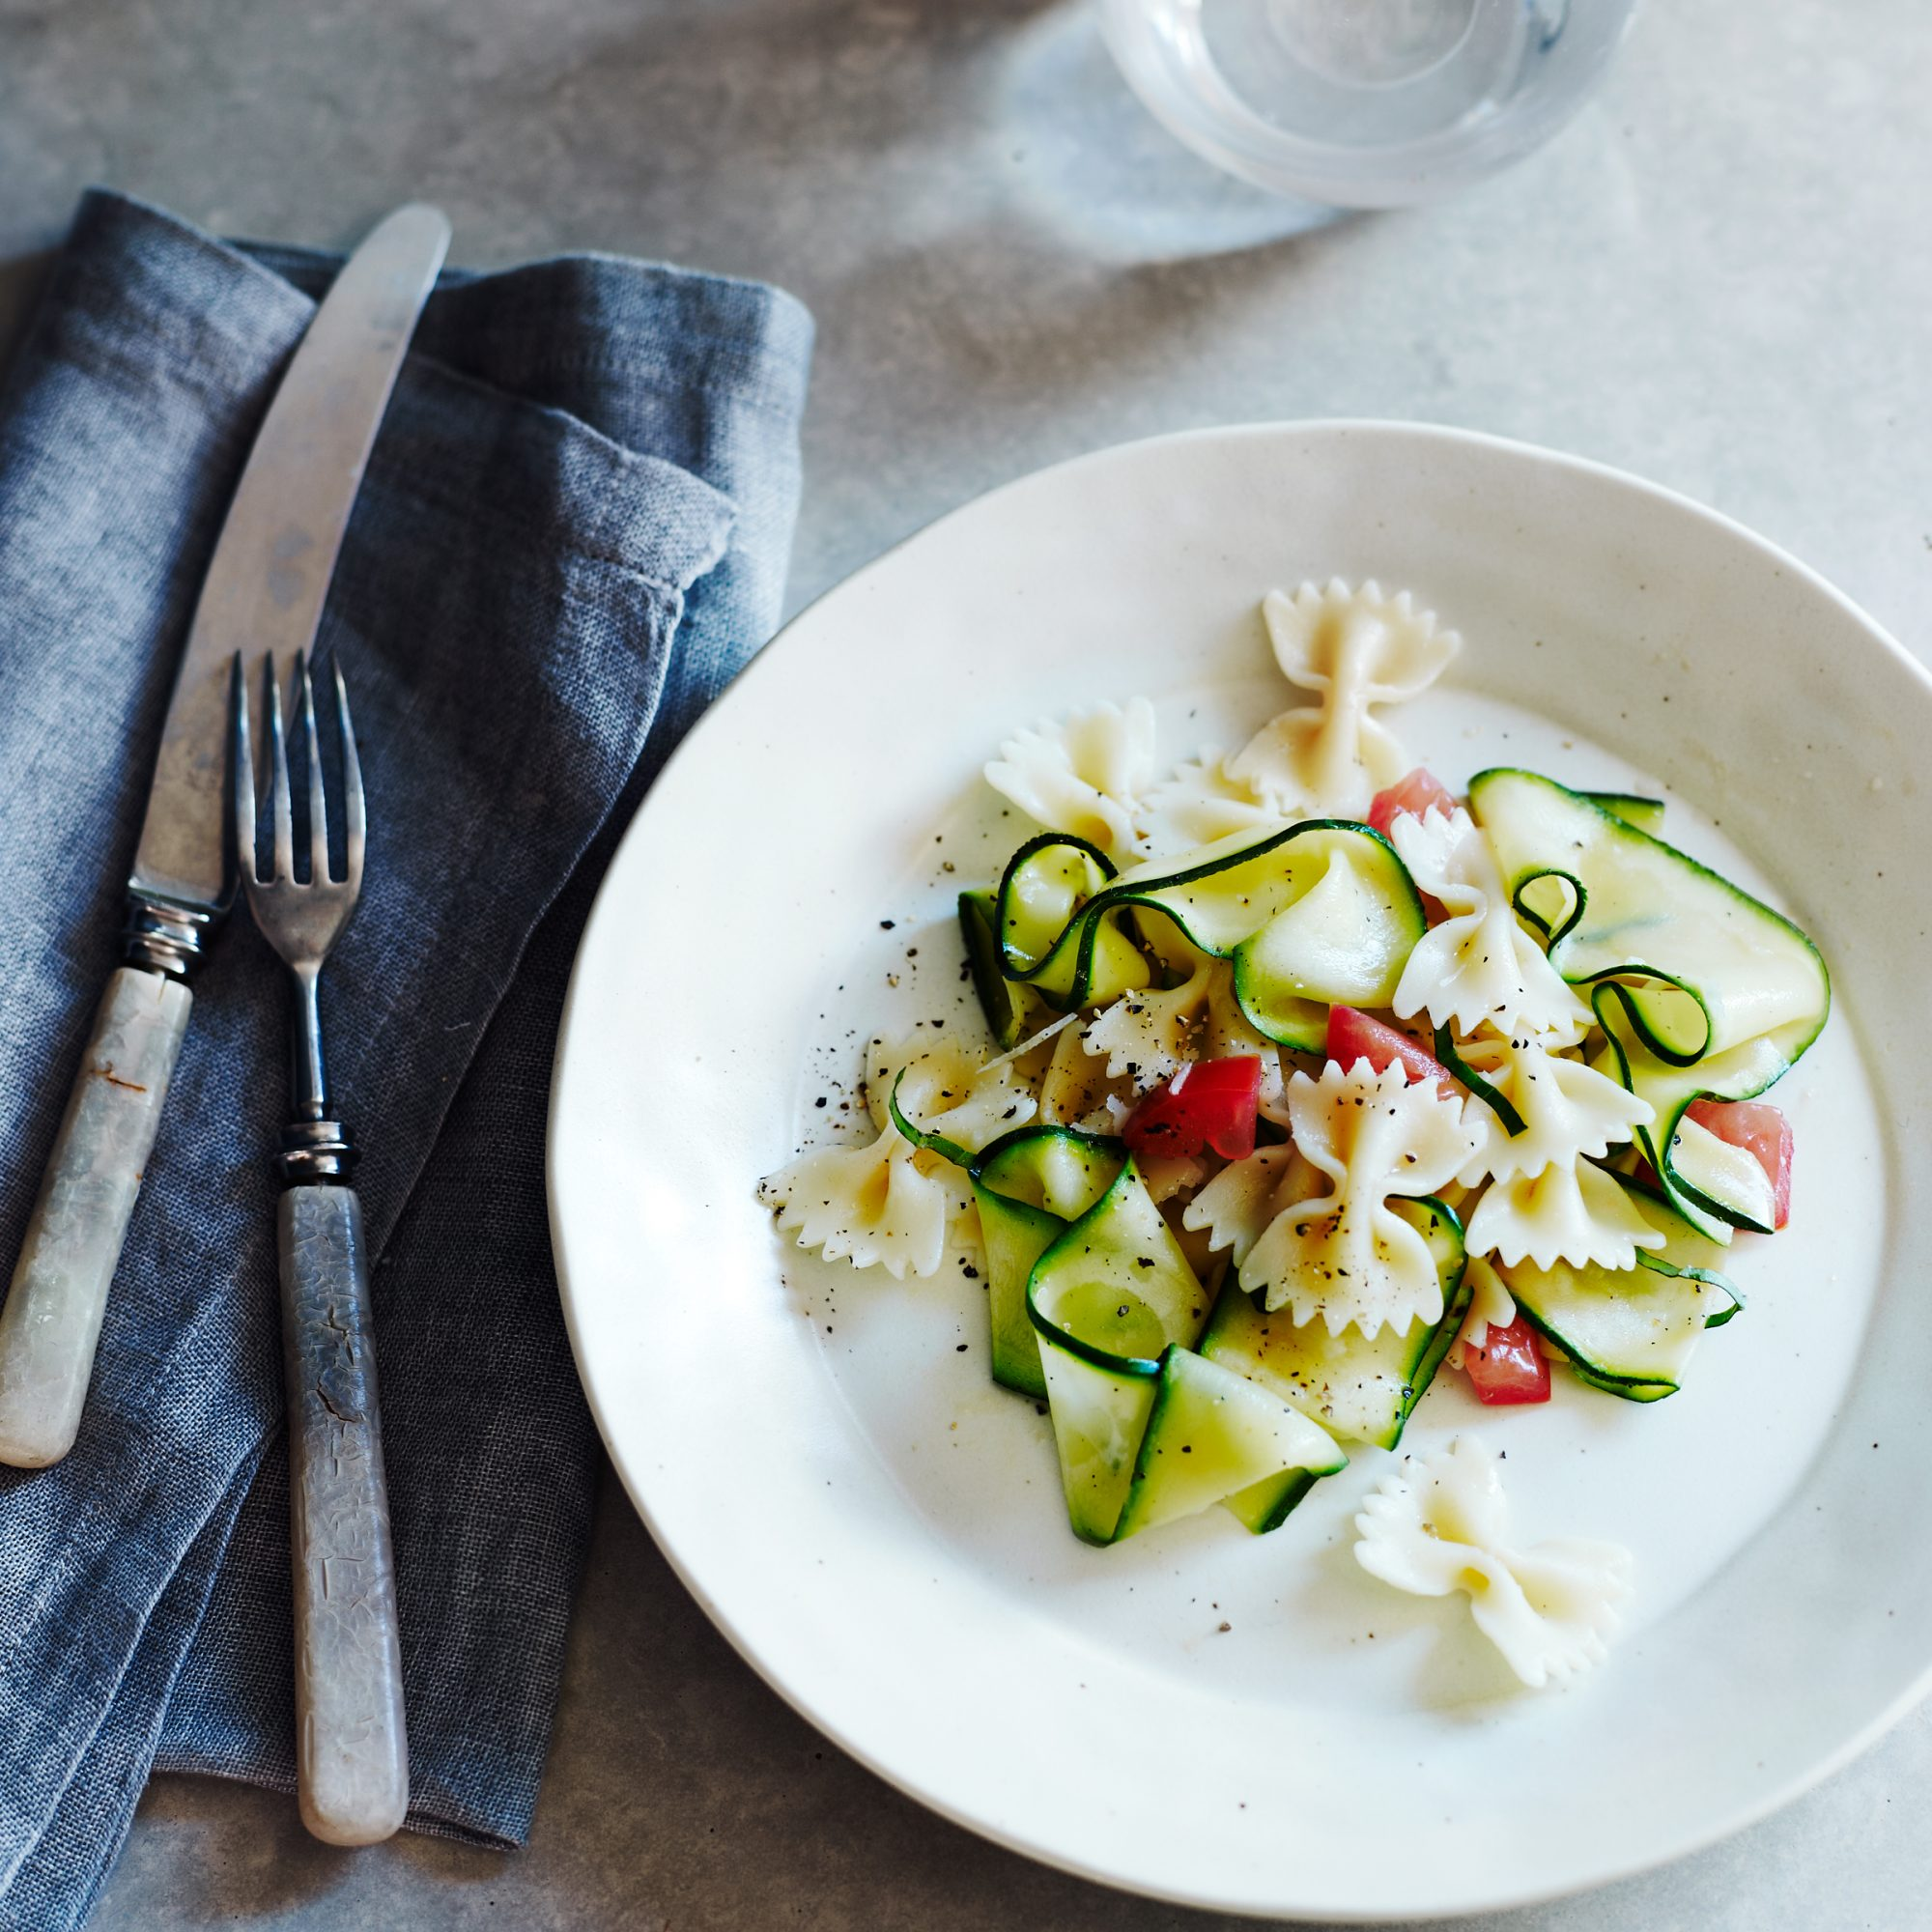 Marinated Zucchini with Bow Ties